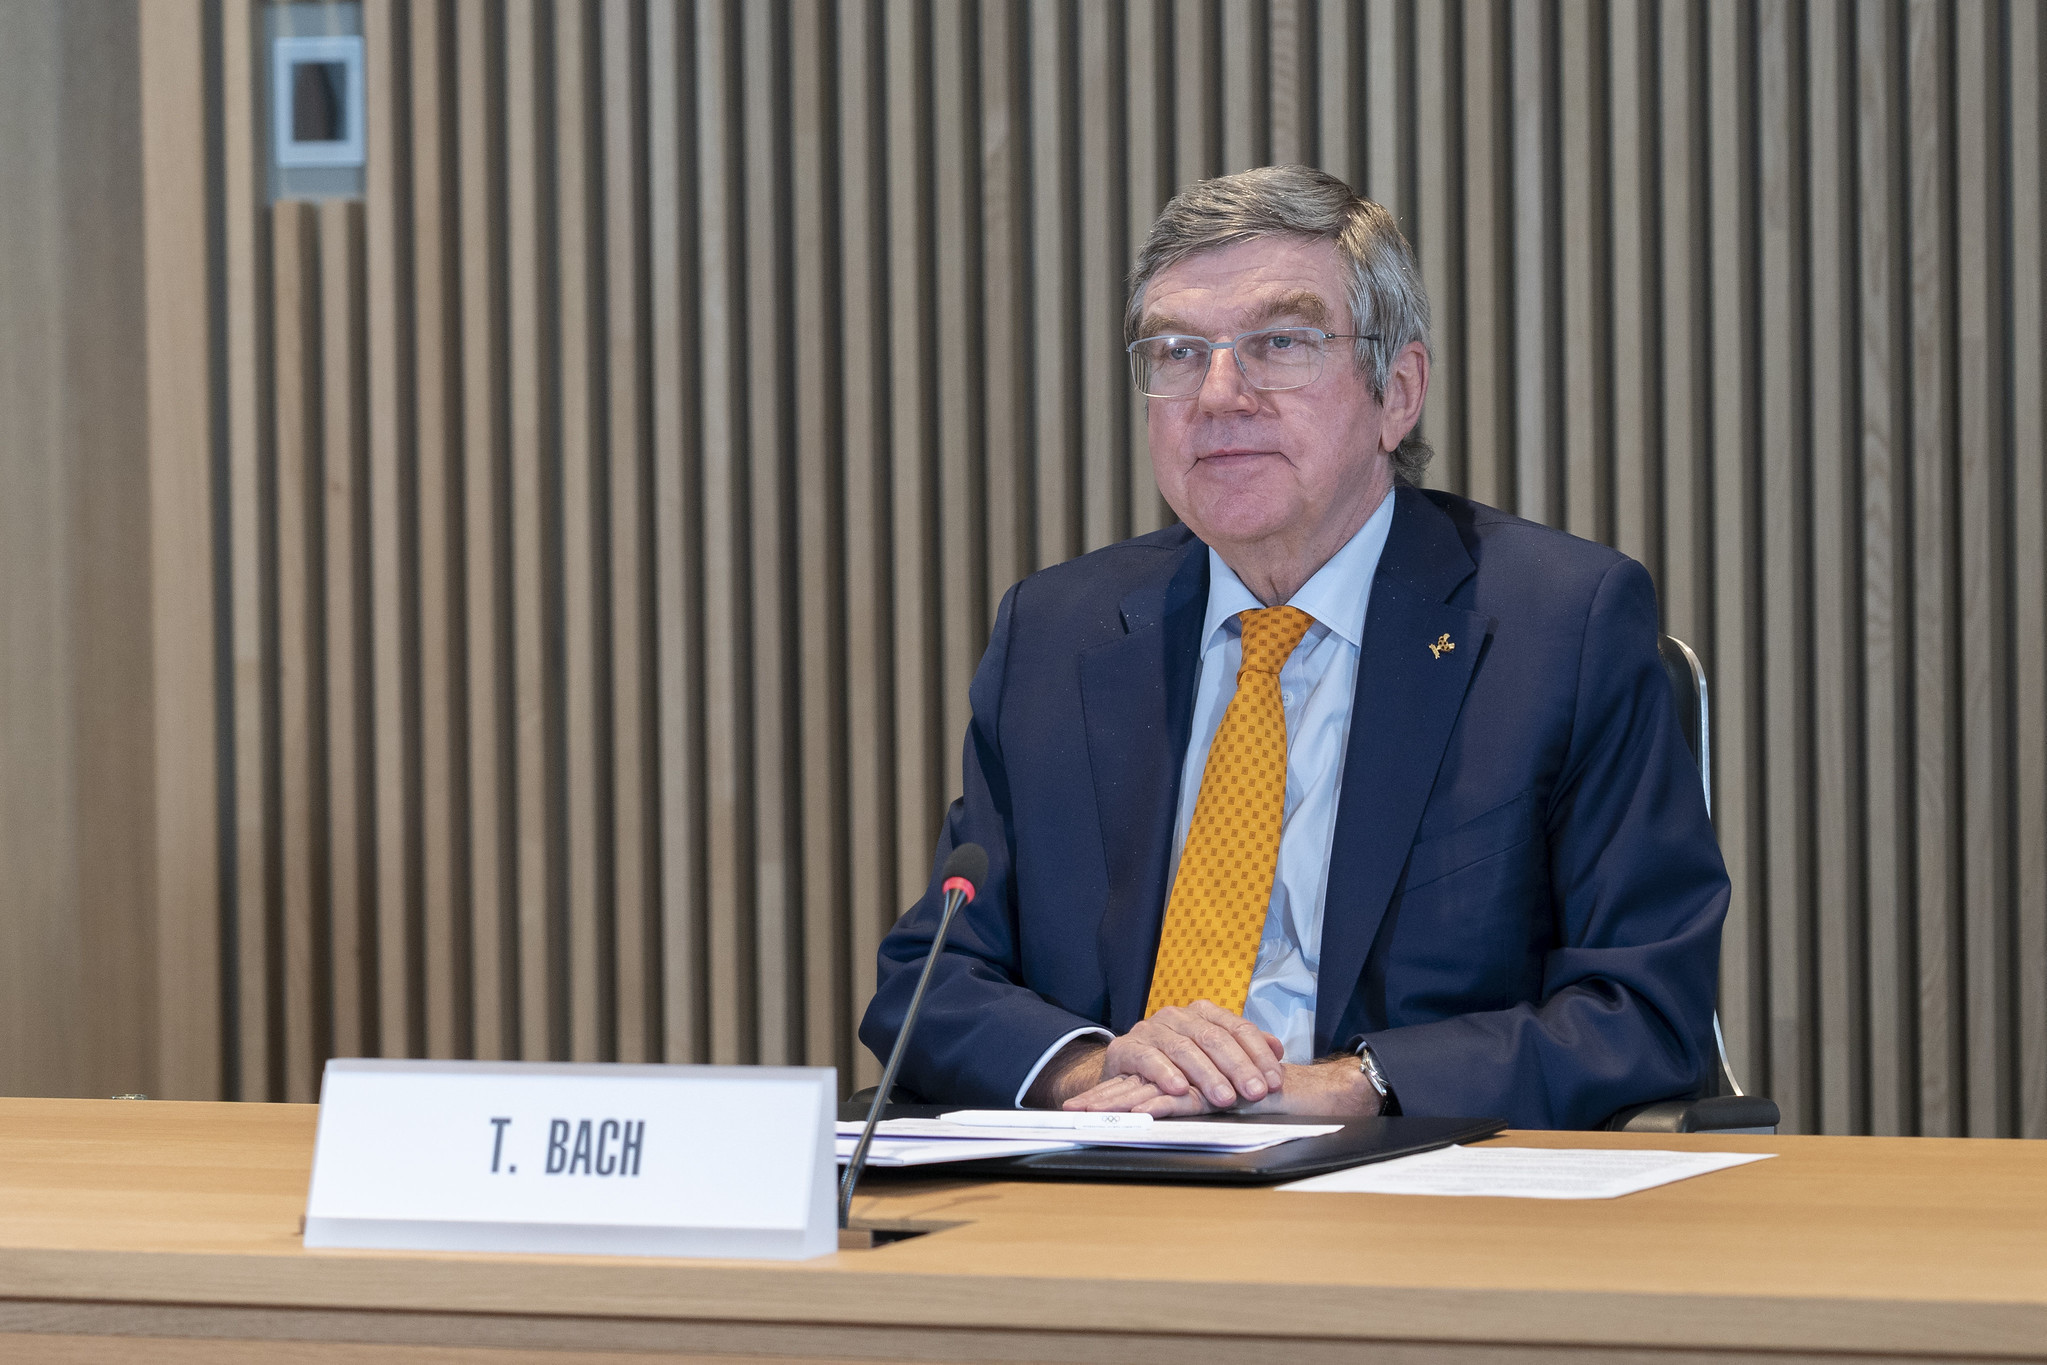 IOC President Thomas Bach has been adamant the Tokyo 2020 Olympics will take place ©IOC